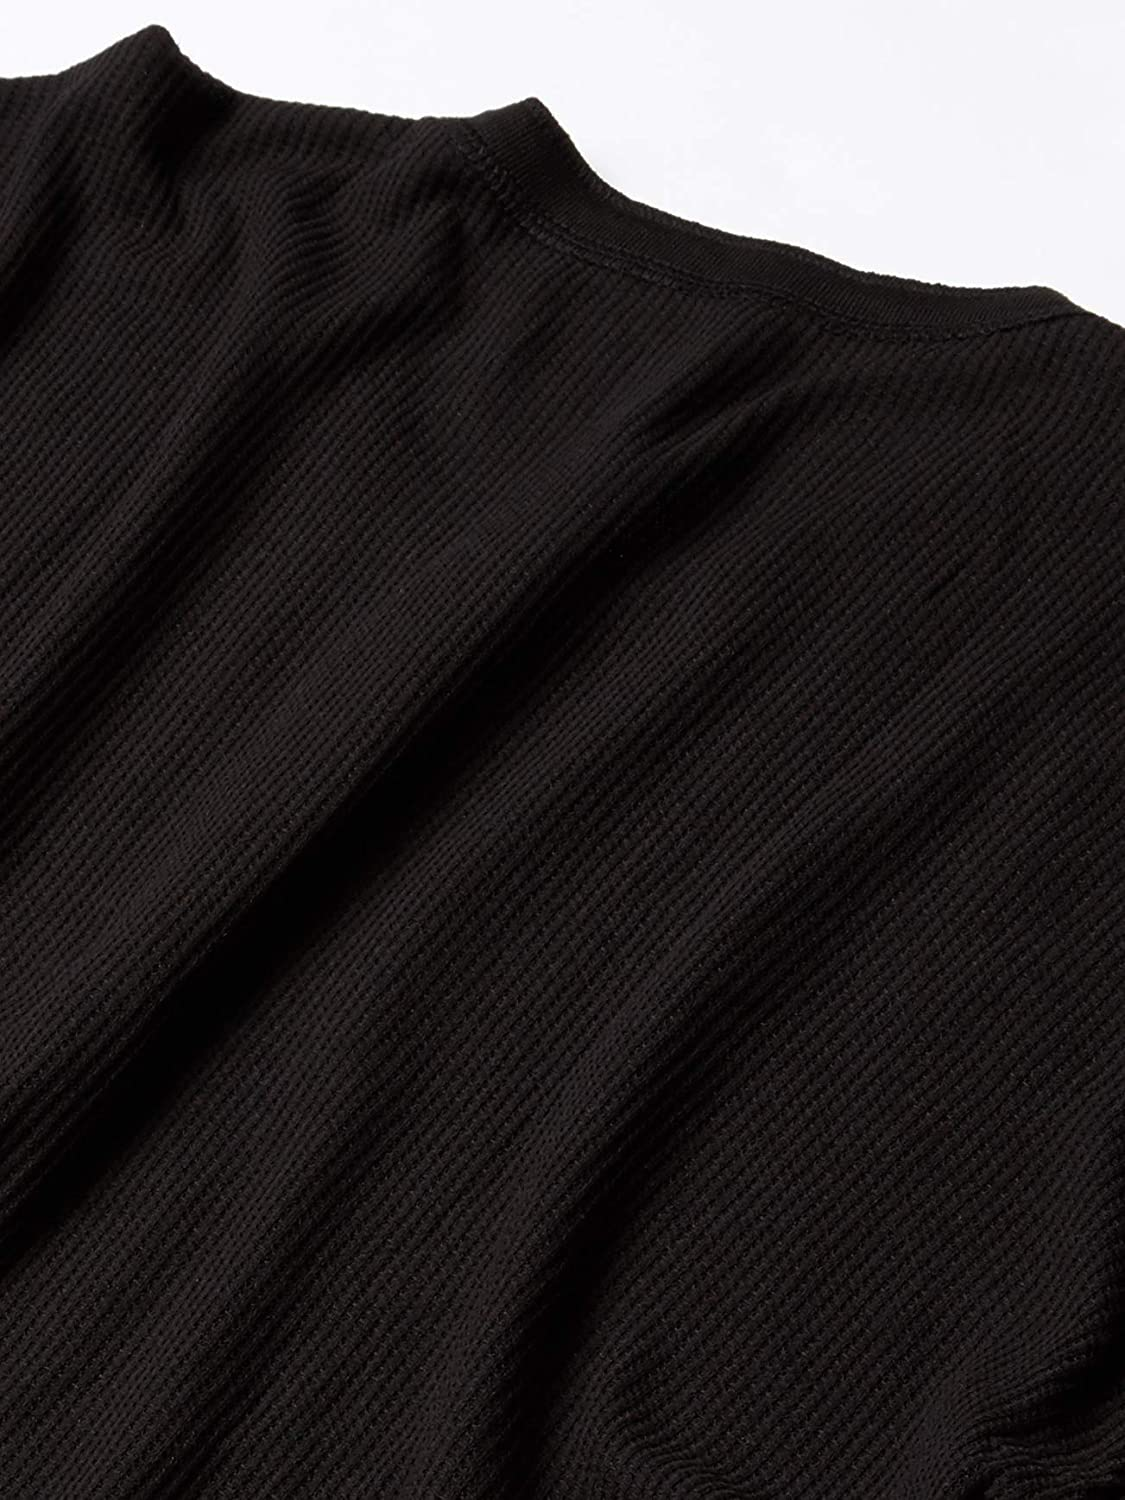 Fruit of the Loom Men's Classic Midweight Waffle Thermal Henley Top at  Men's Clothing store